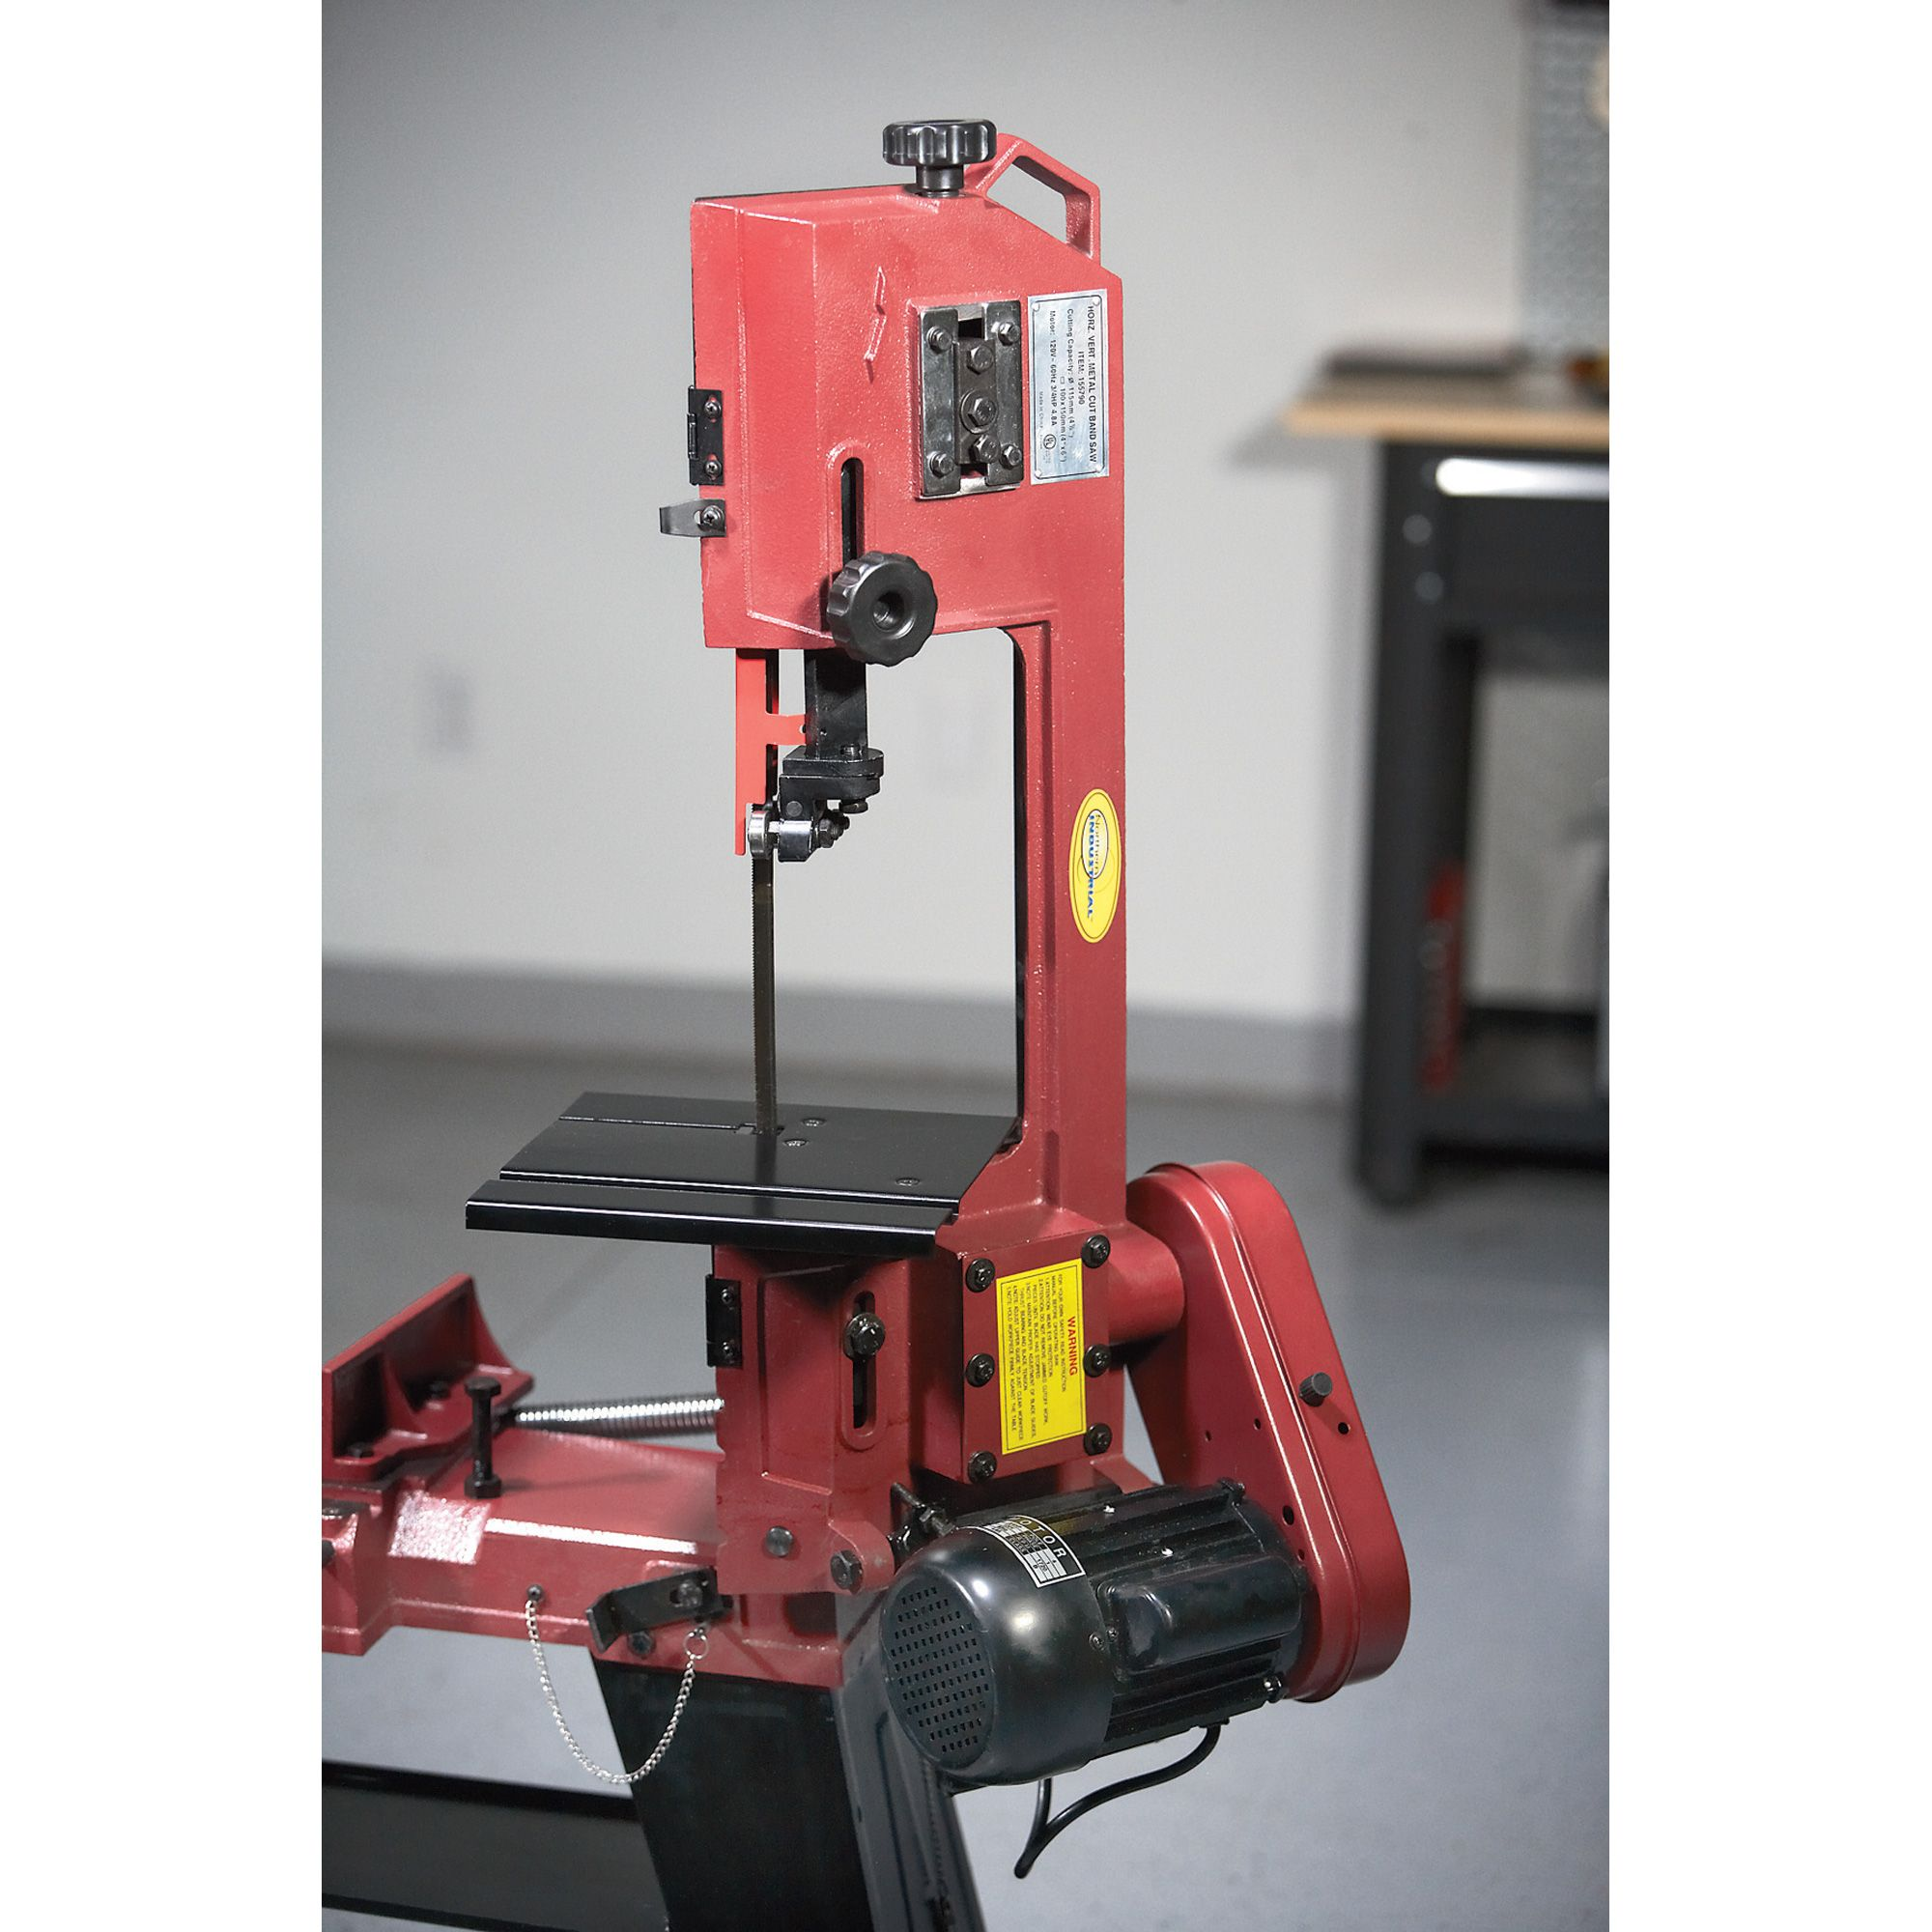 Northern Industrial Horizontal/Vertical Metal Cutting Band Saw | On